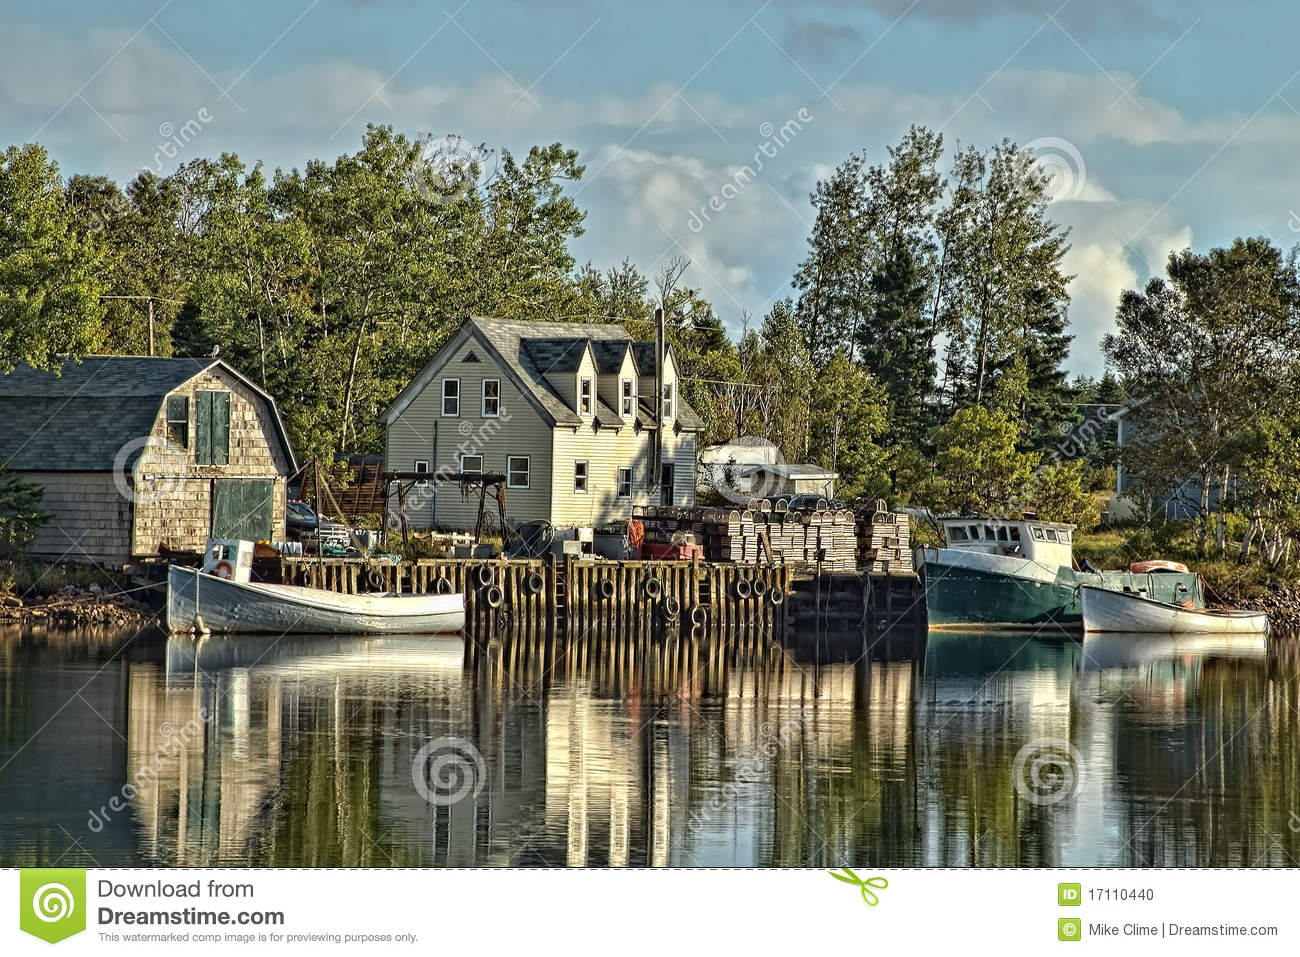 Beautifuful Lobster Boat And Old Wooden Traps Stock Photo - Image: 17110440